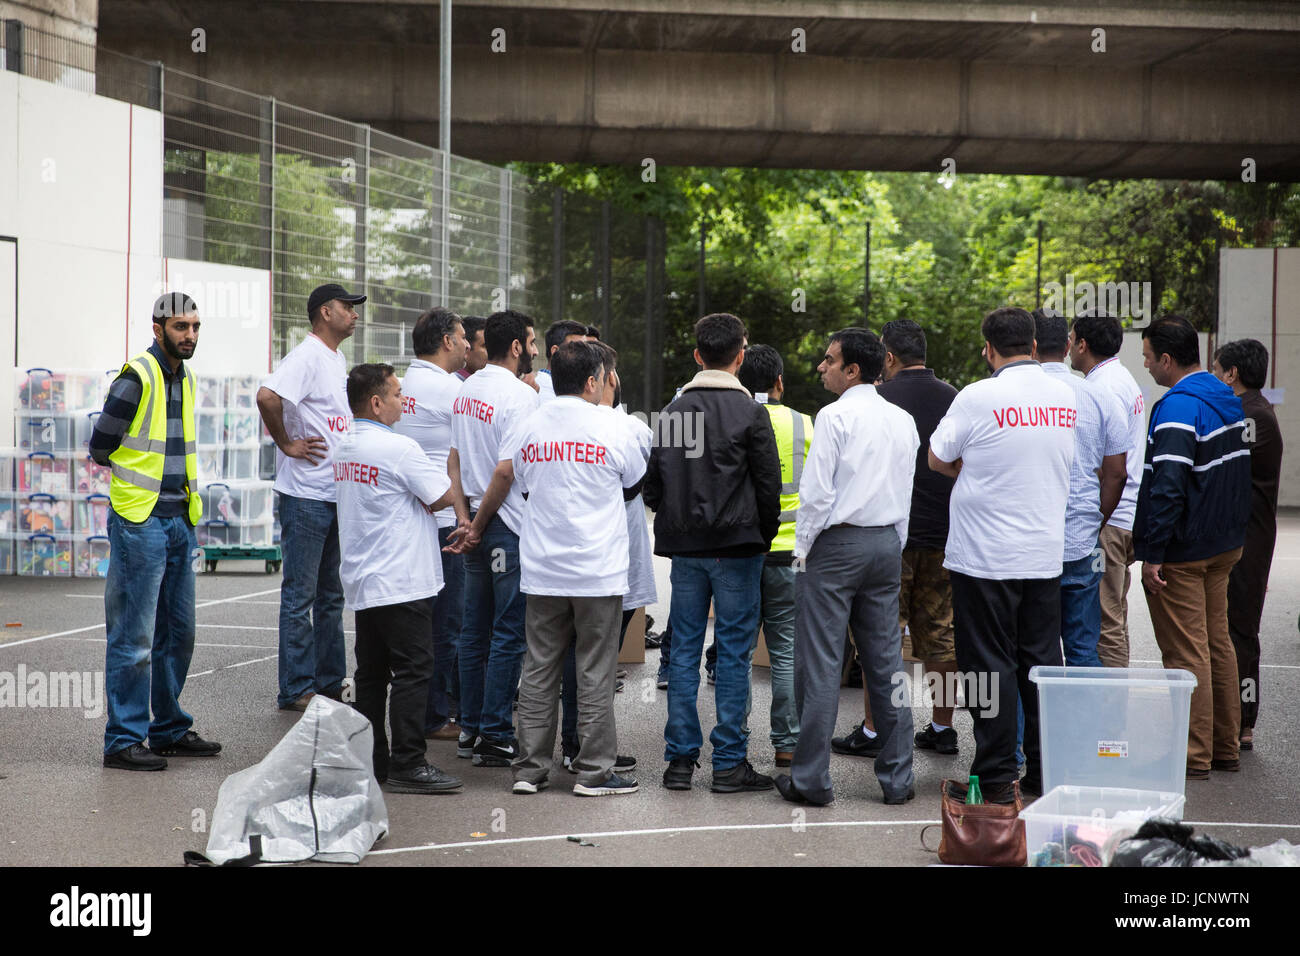 London, UK. 16th June, 2017. Volunteers meet outside the Westway Sports Centre on the third day of relief efforts - Stock Image